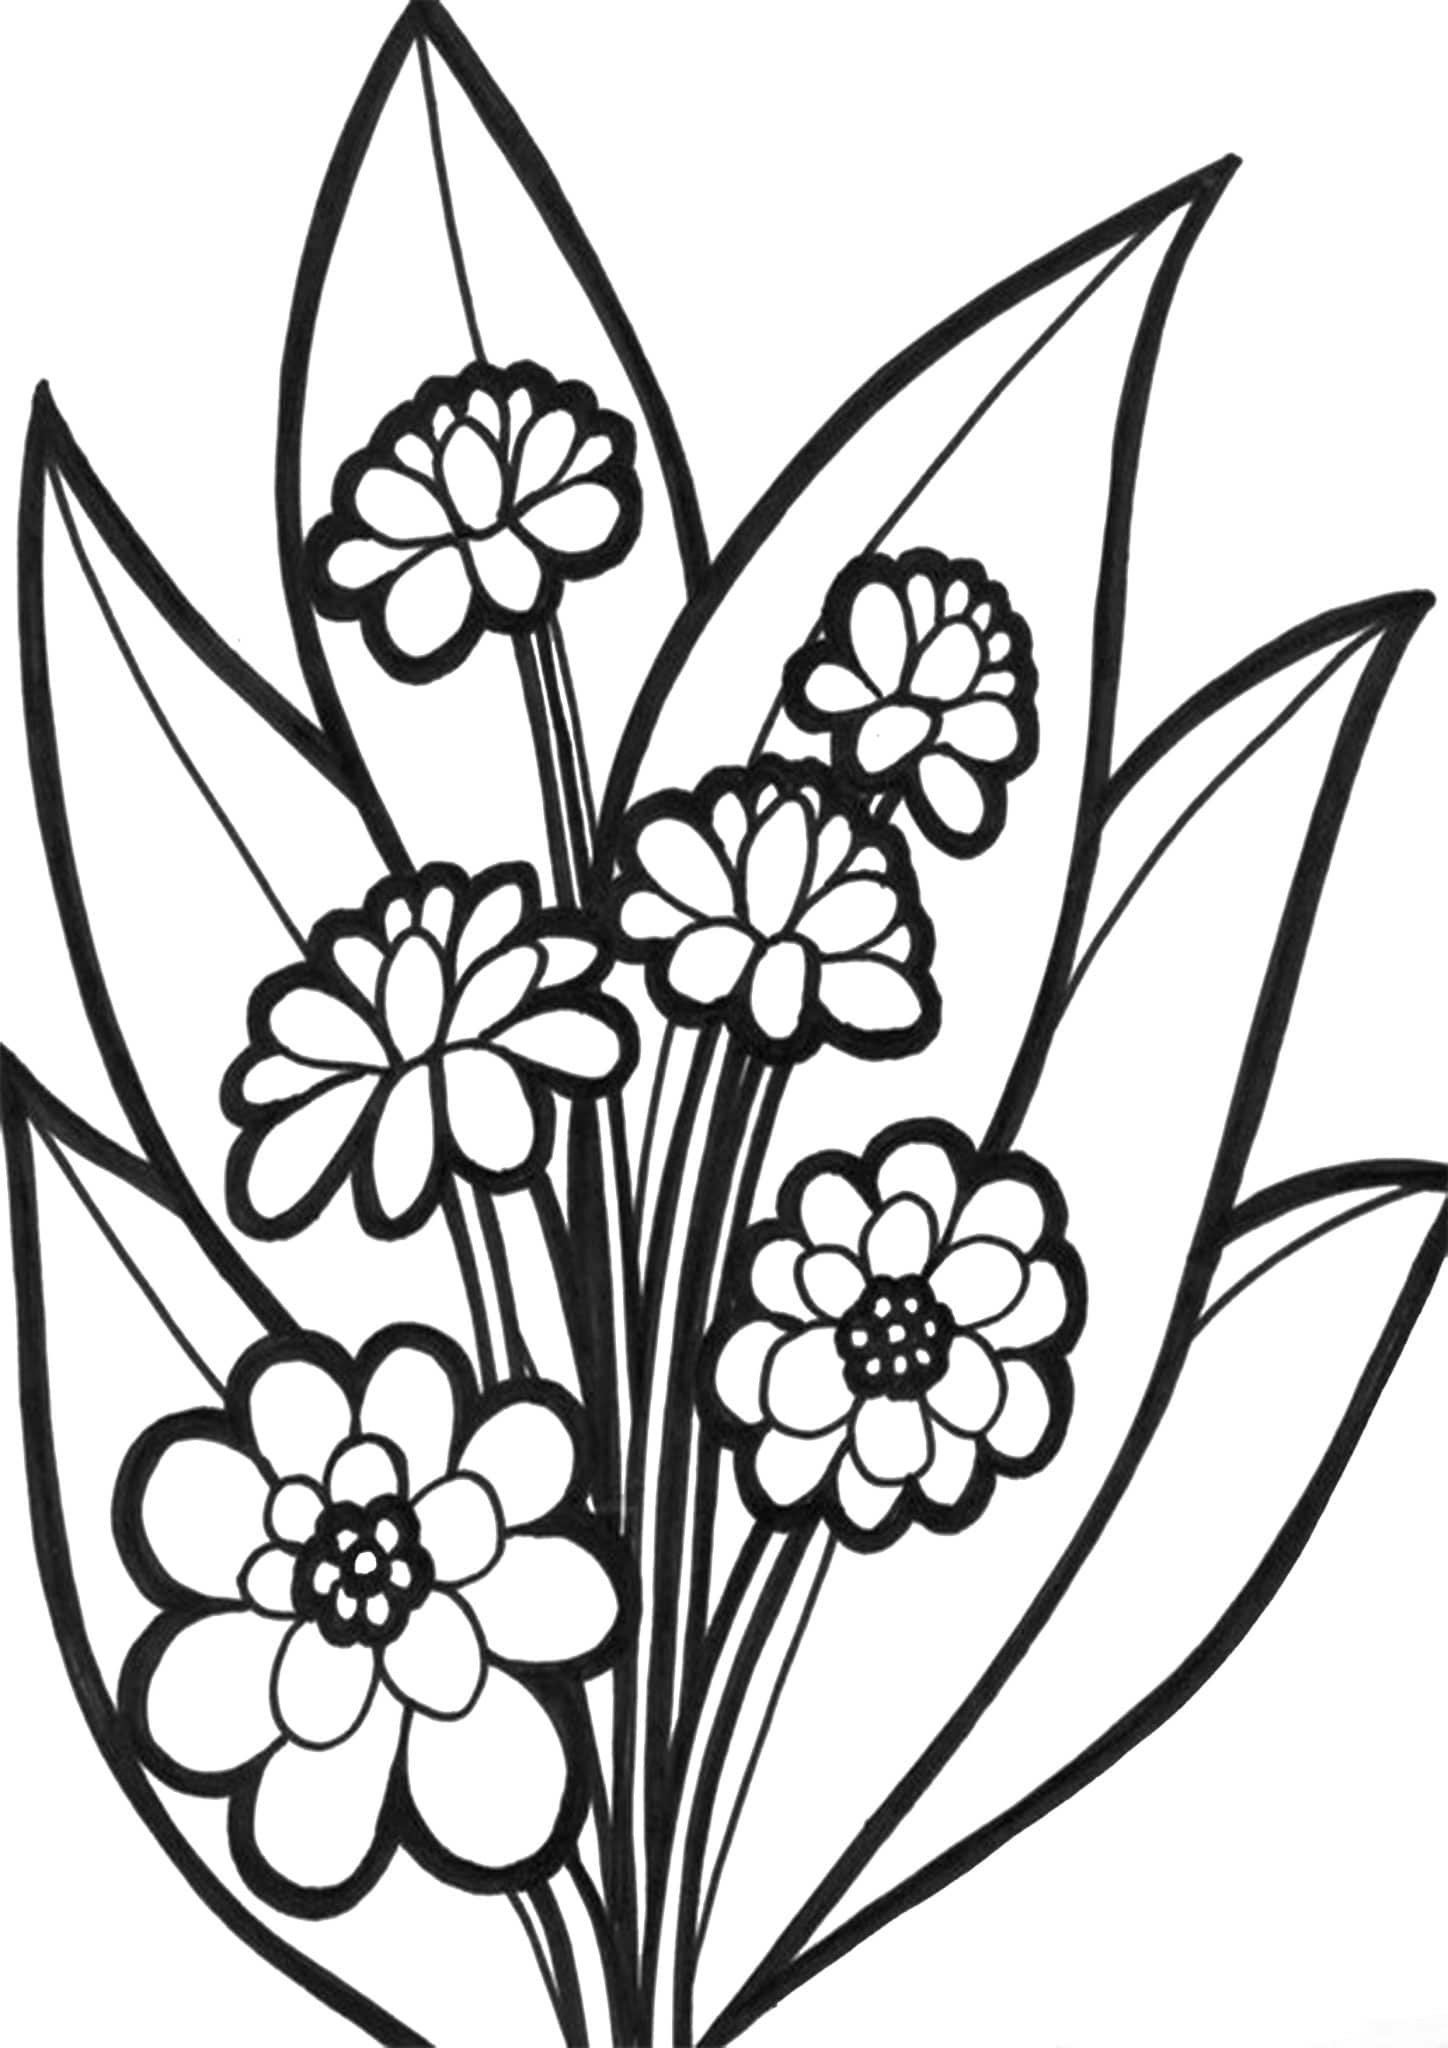 flowers coloring pages printable free printable flower coloring pages for kids cool2bkids pages coloring flowers printable